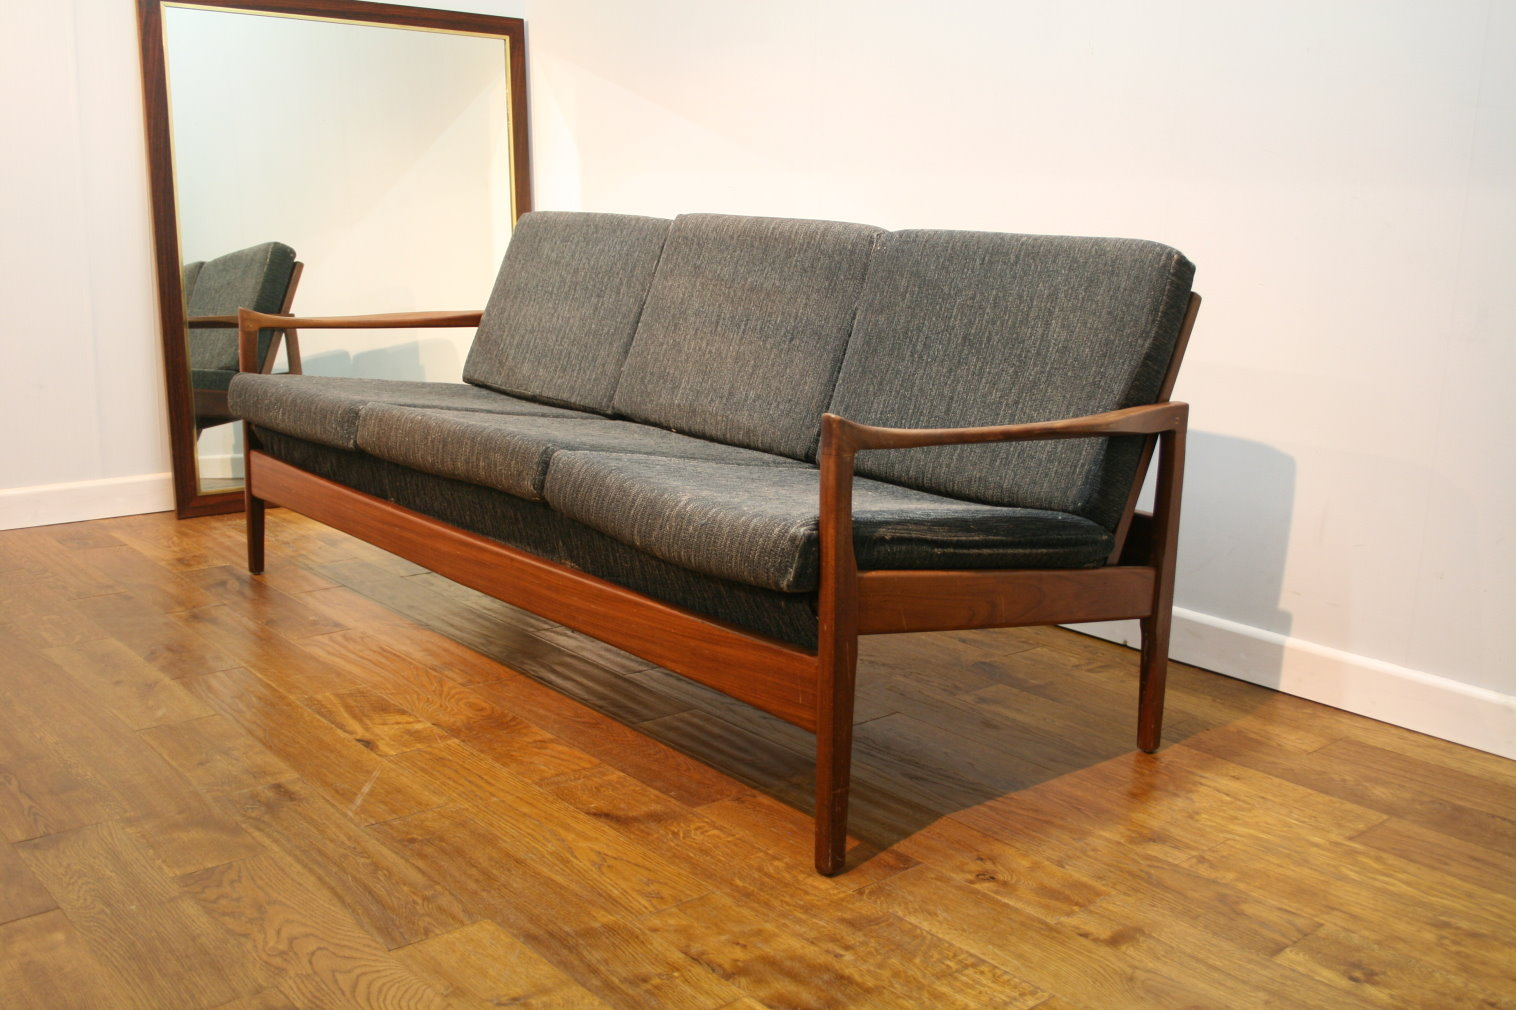 retro style sofa uk finlay corner john lewis 60s greaves and thomas teak for re upholstery